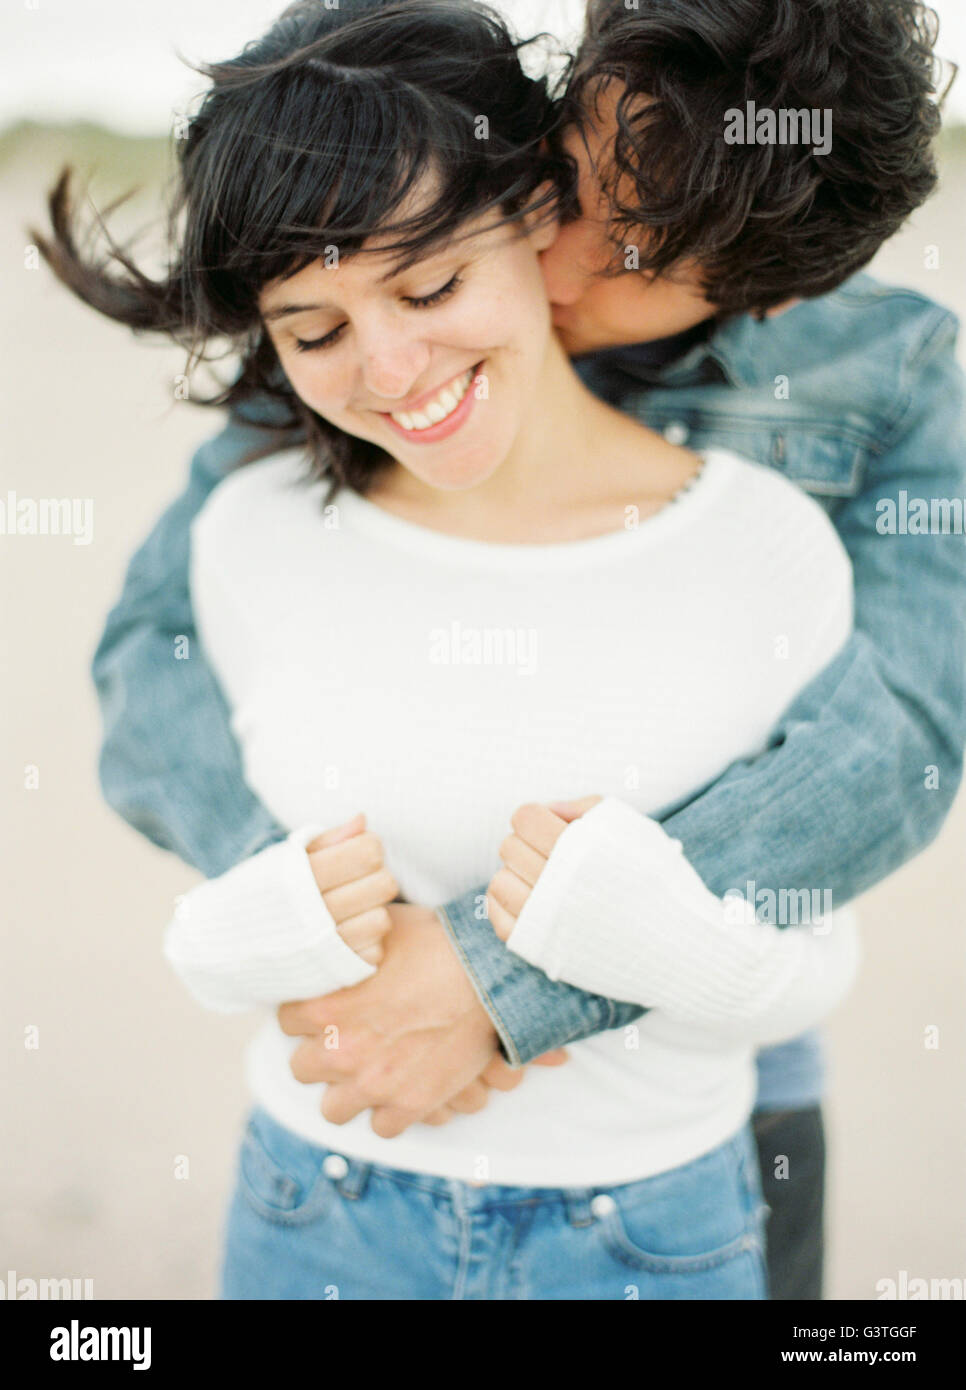 Spain, Valencia, Man embracing and kissing girlfriend - Stock Image